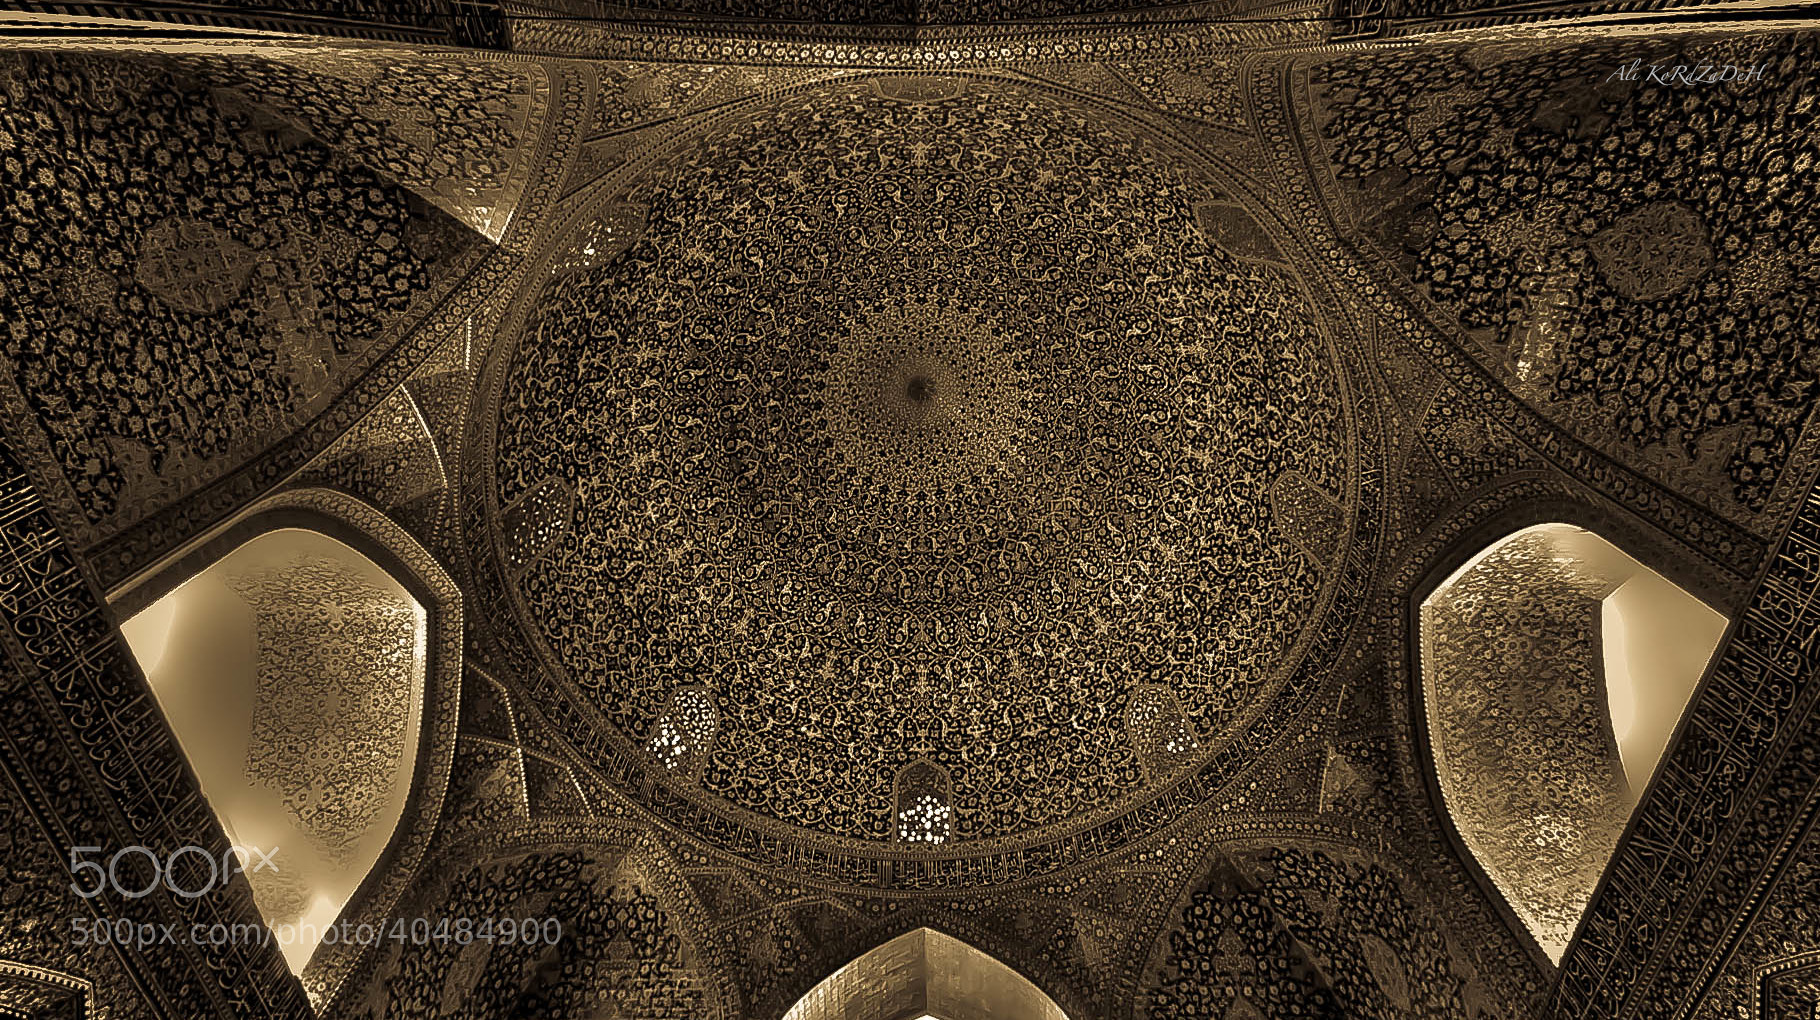 Photograph Magic of Tiles by Ali KoRdZaDeh on 500px